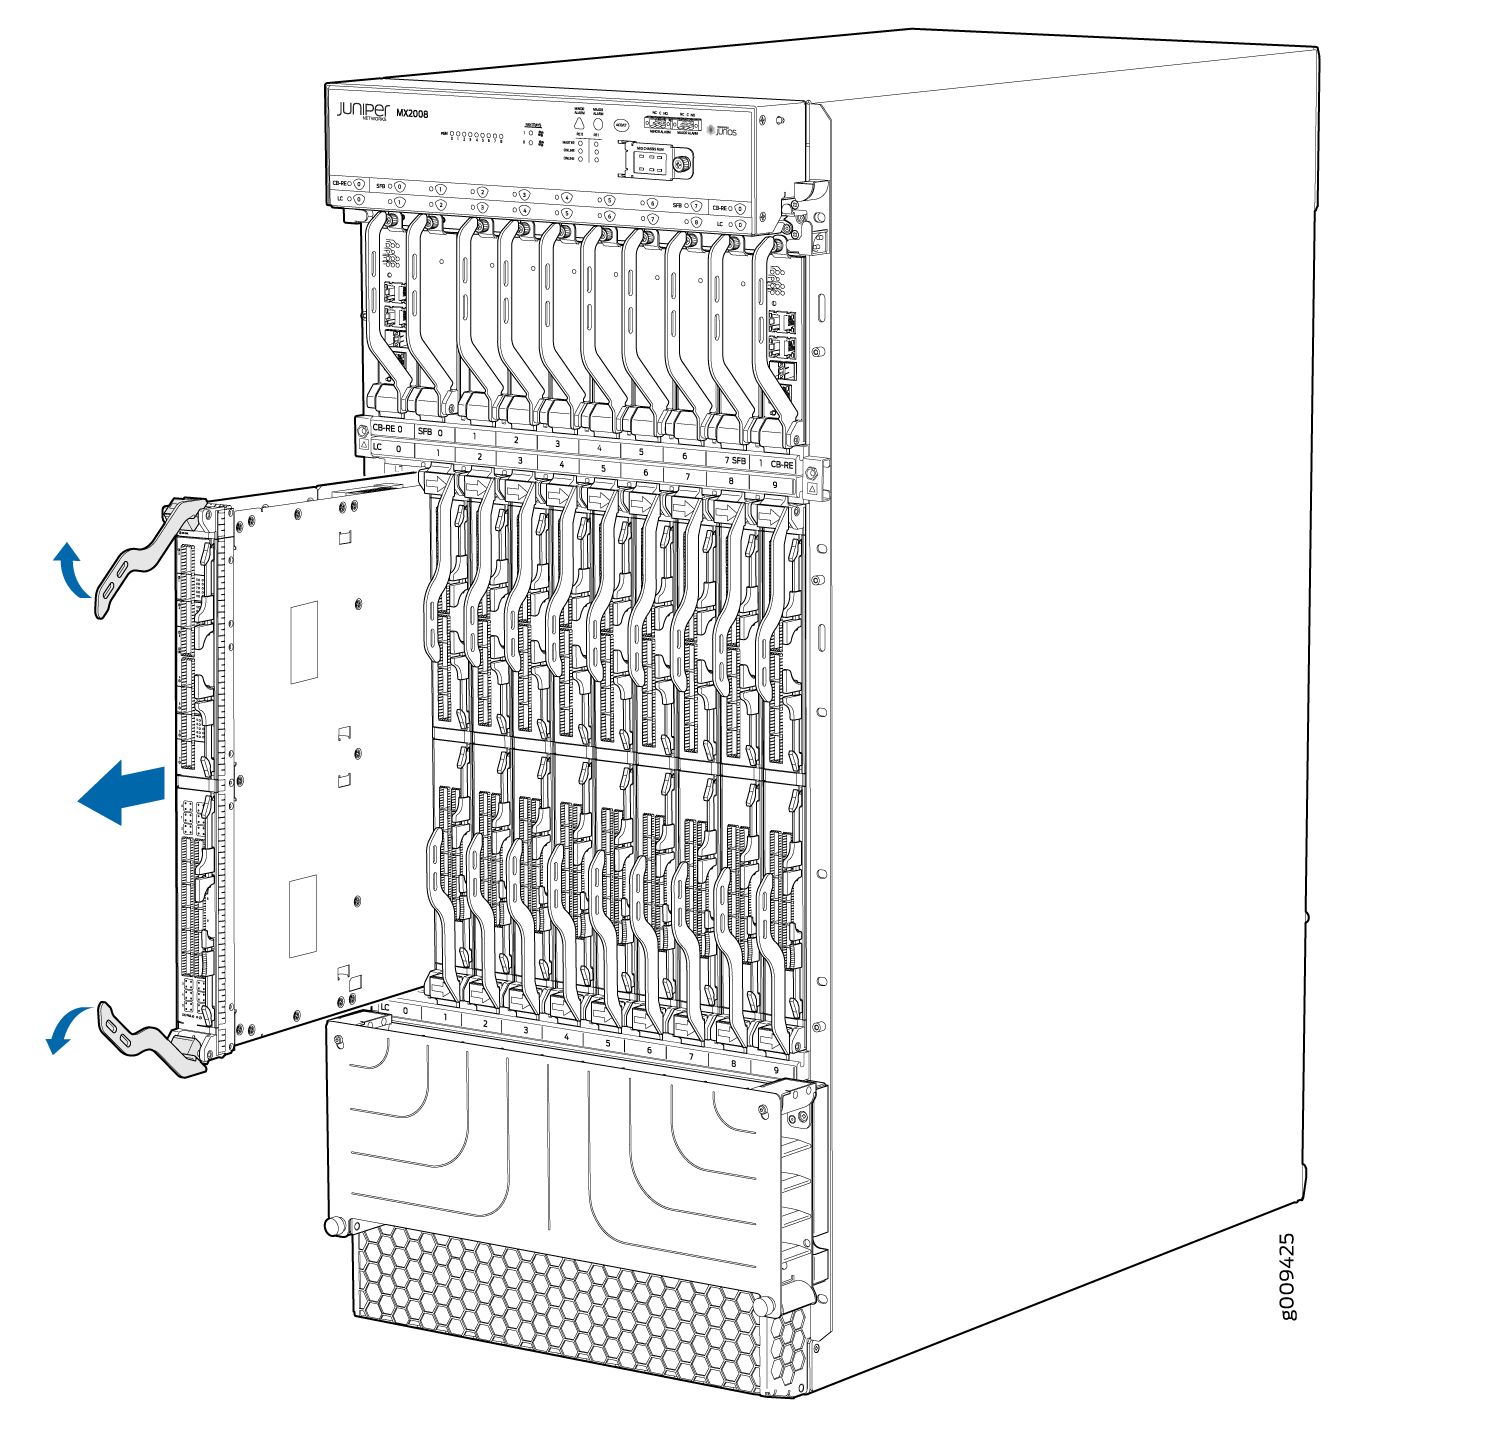 Removing Components From The Mx Router Chassis Before